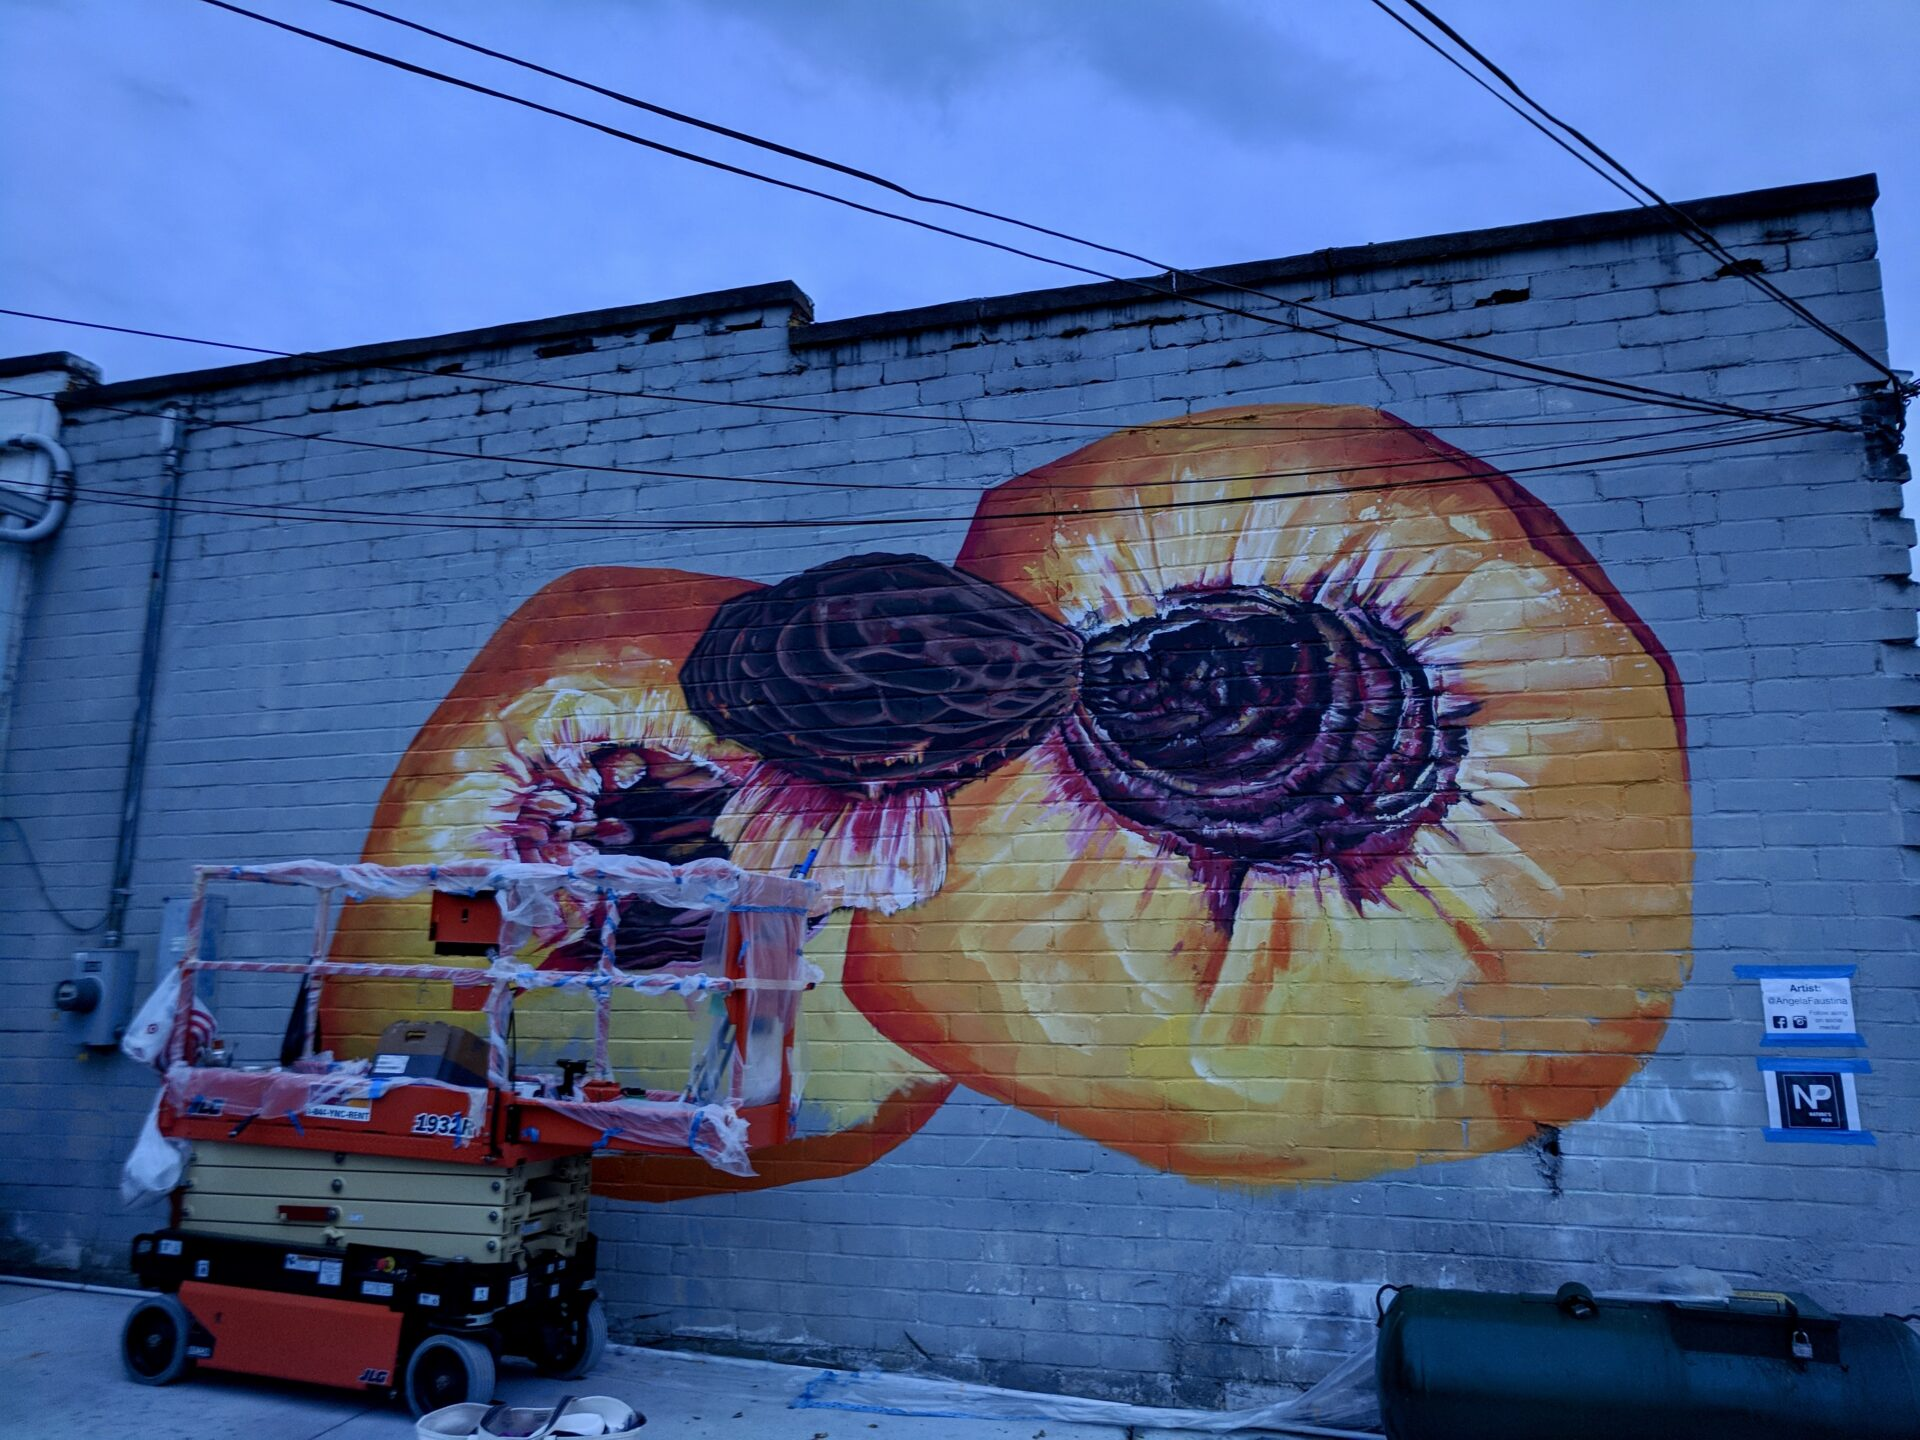 Angela Faustina painting Peach III mural on Marietta Square for the M2R Trailfest, sponsored by Nature's Pick Market.